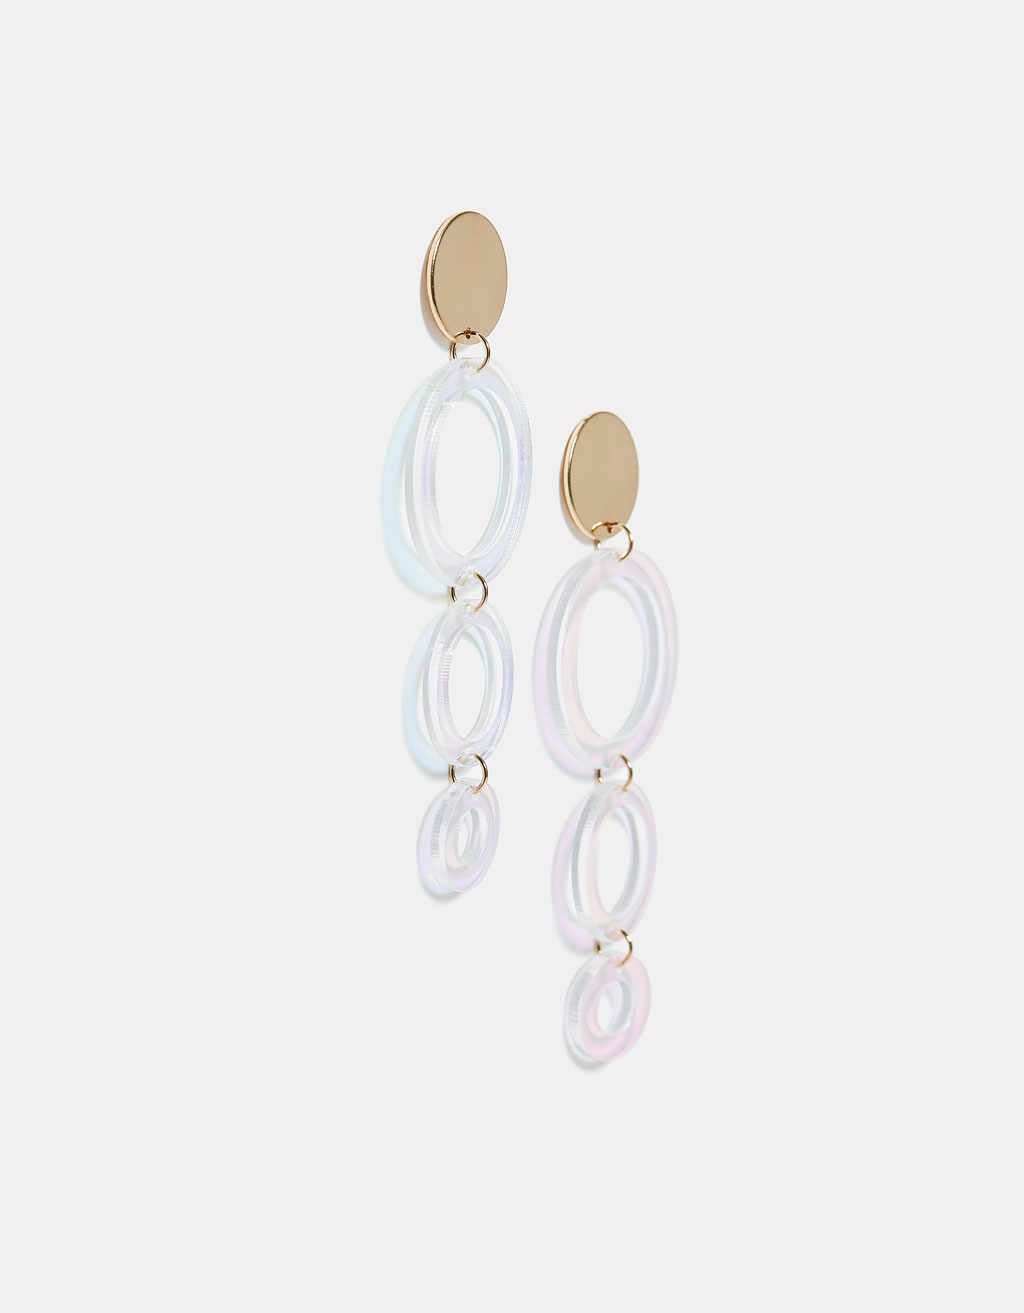 Iridescent dangling earrings